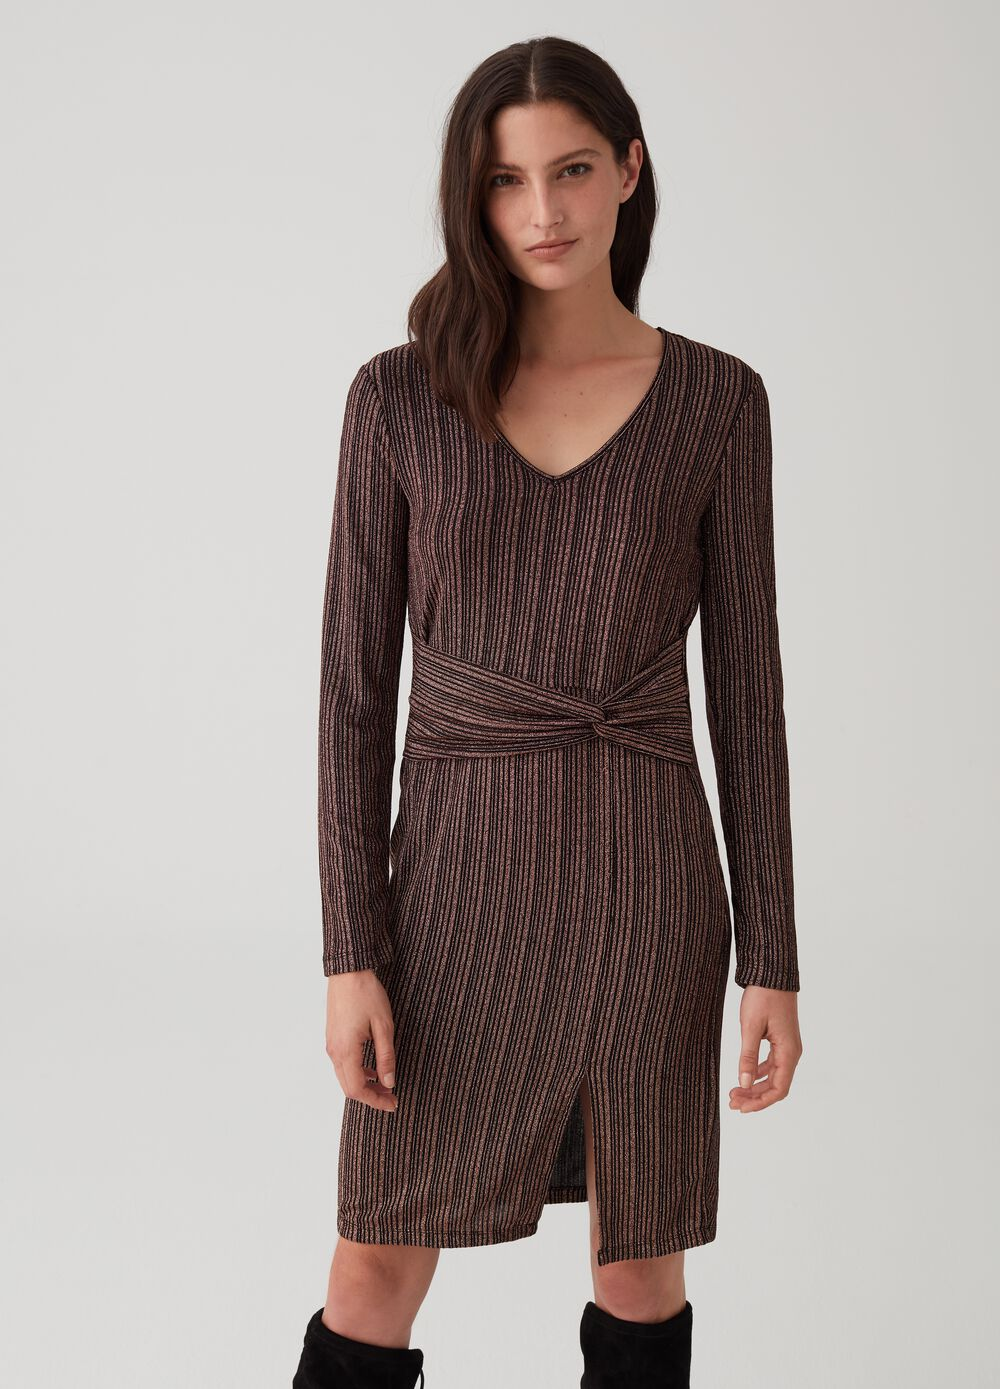 Stretch dress with long lurex sleeves